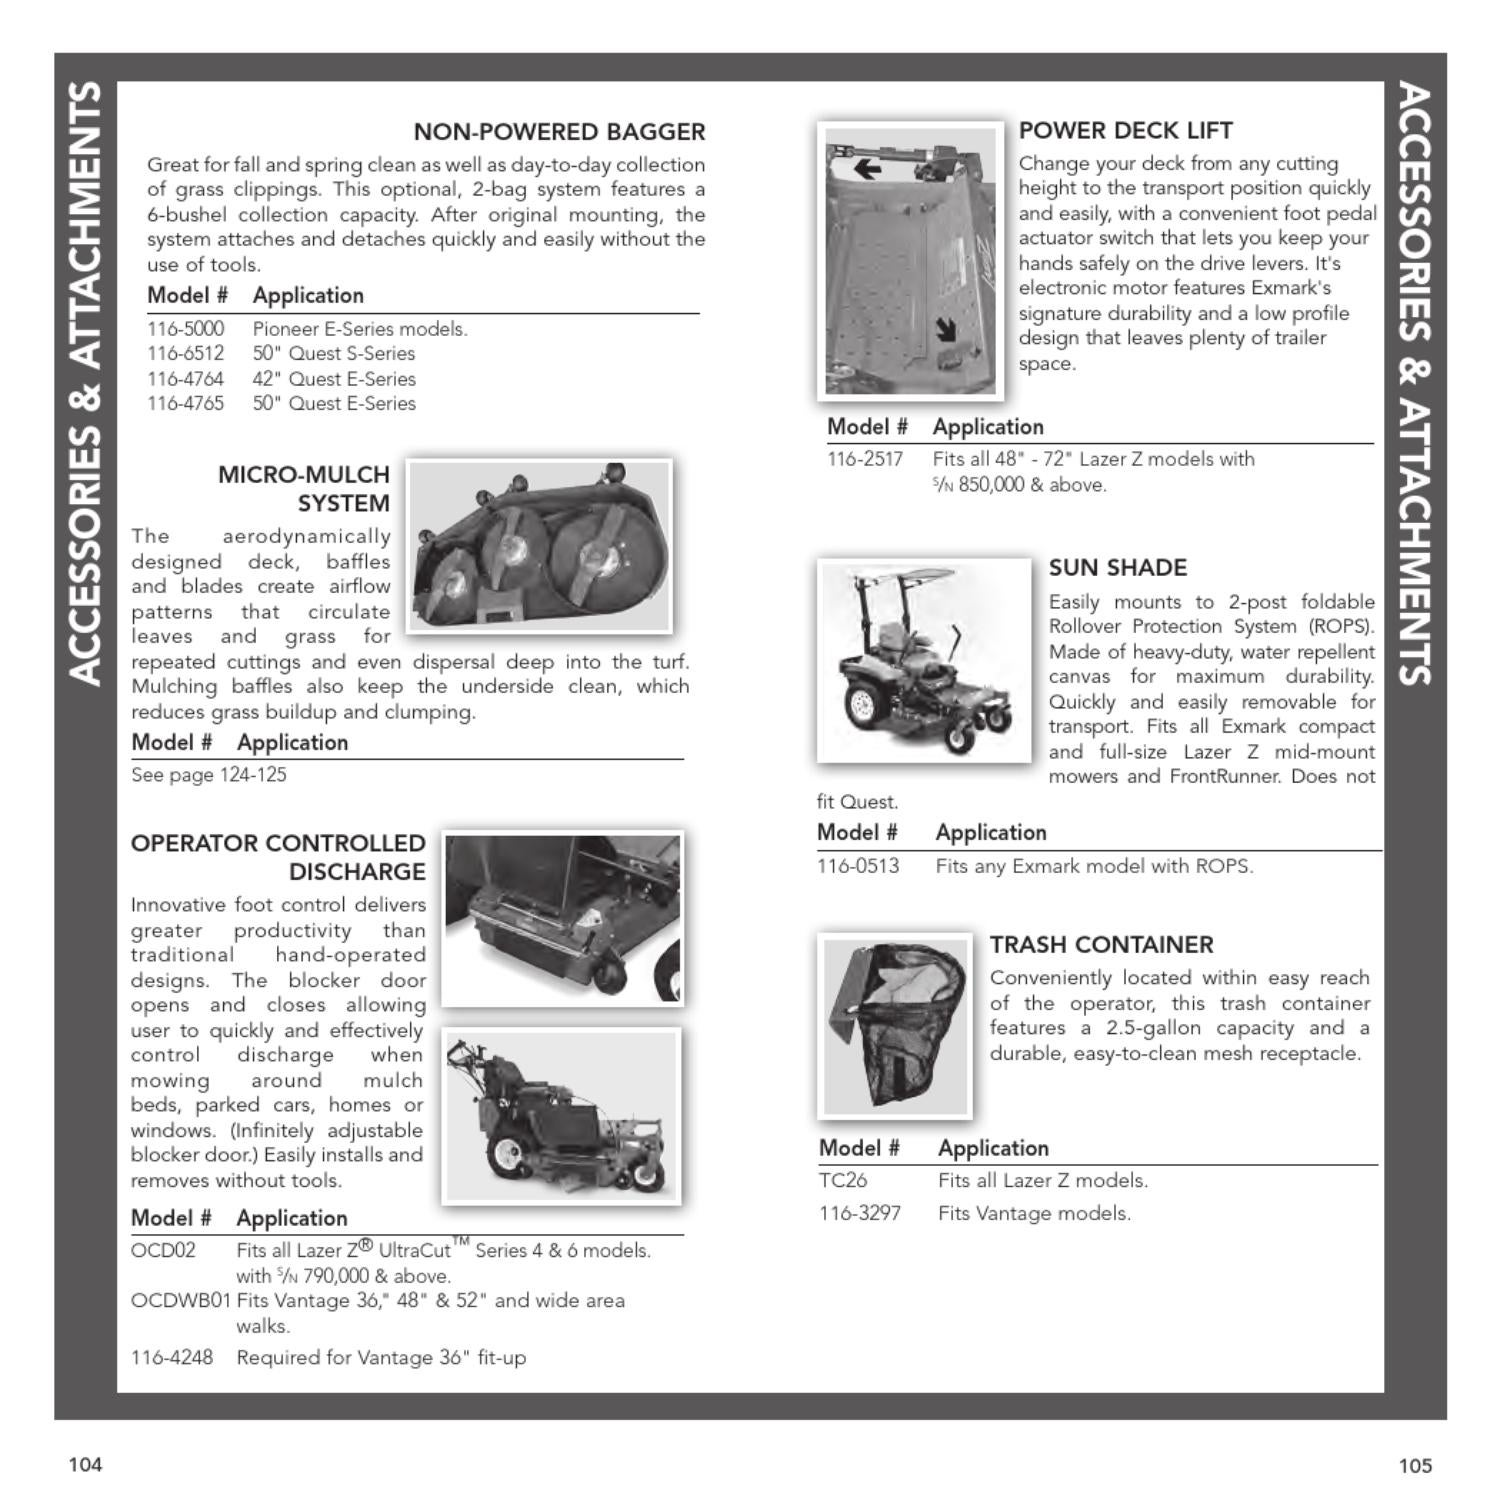 2012 Exmark Full Product Info Guide by Rick Cleghorn - issuu